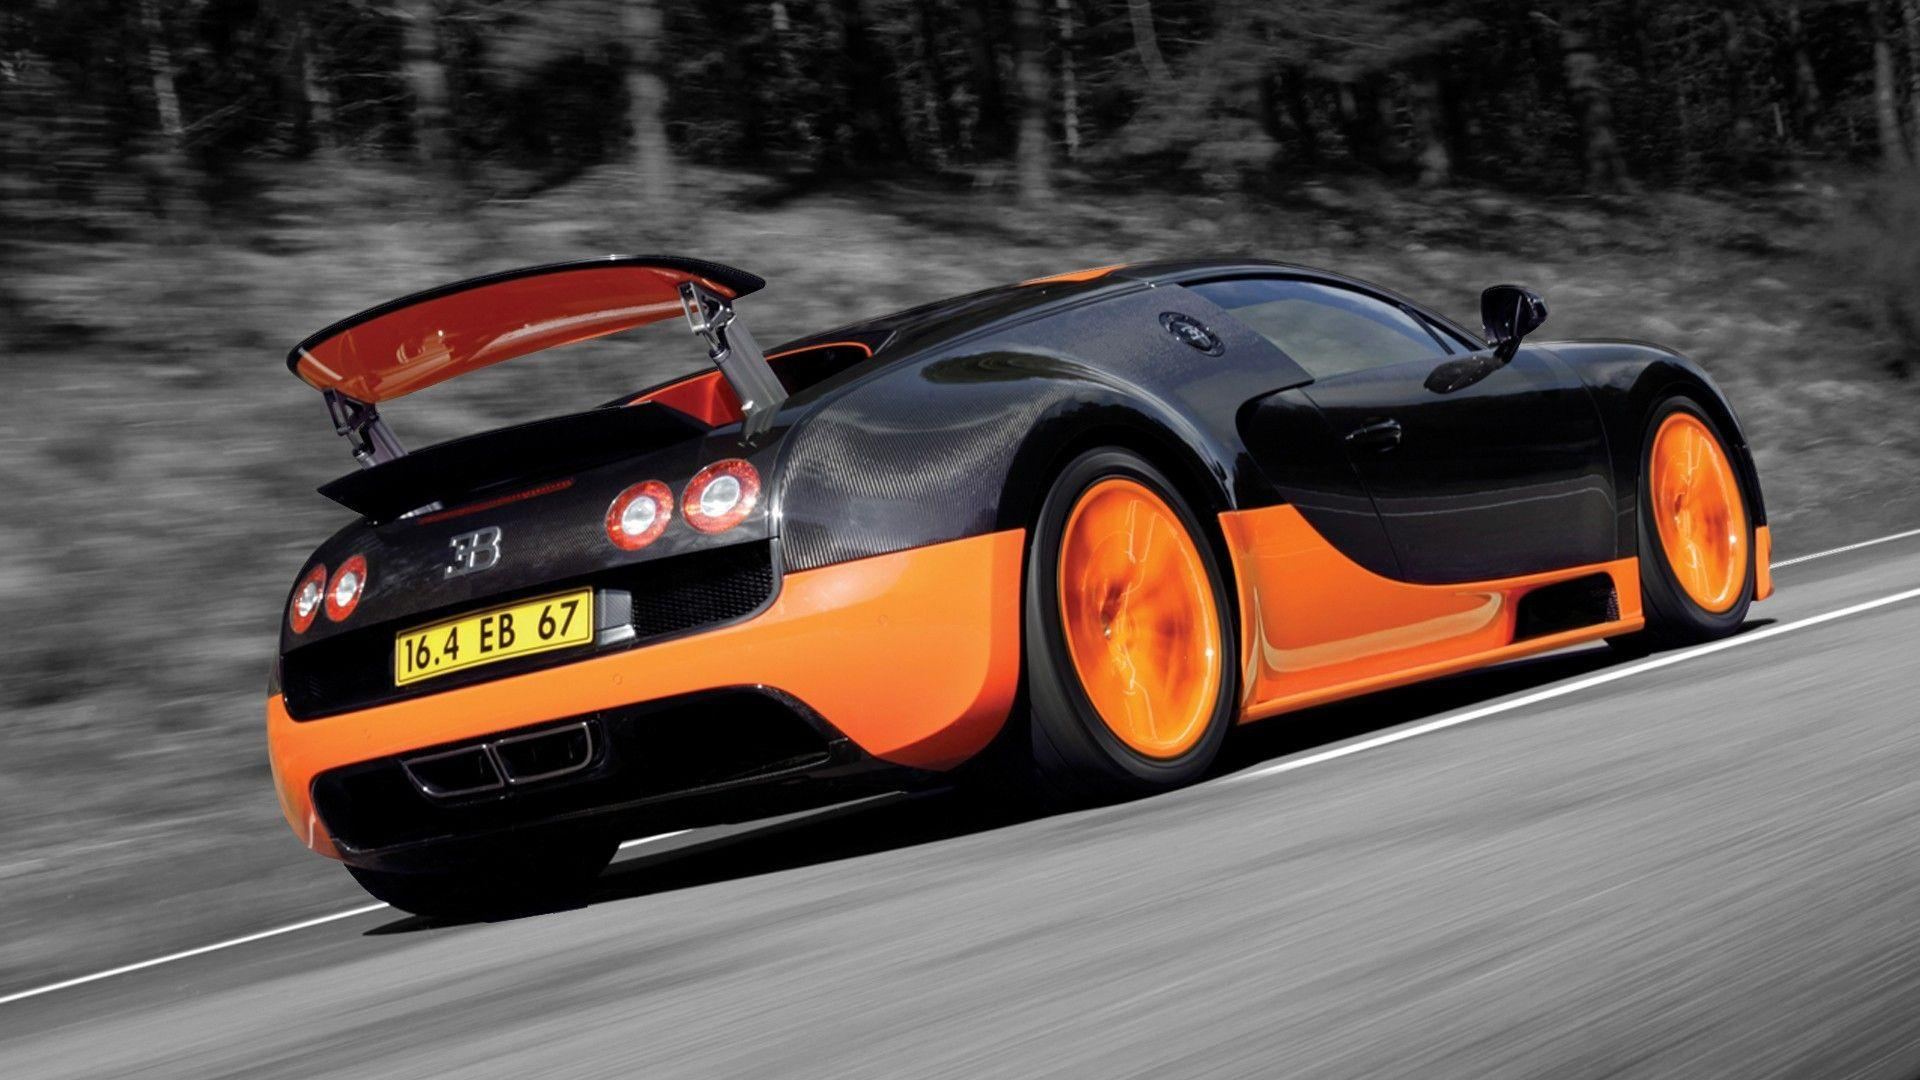 Bugatti Veyron Super Sport Wallpaper 1920x1080: Bugatti Veyron Super Sport Wallpapers